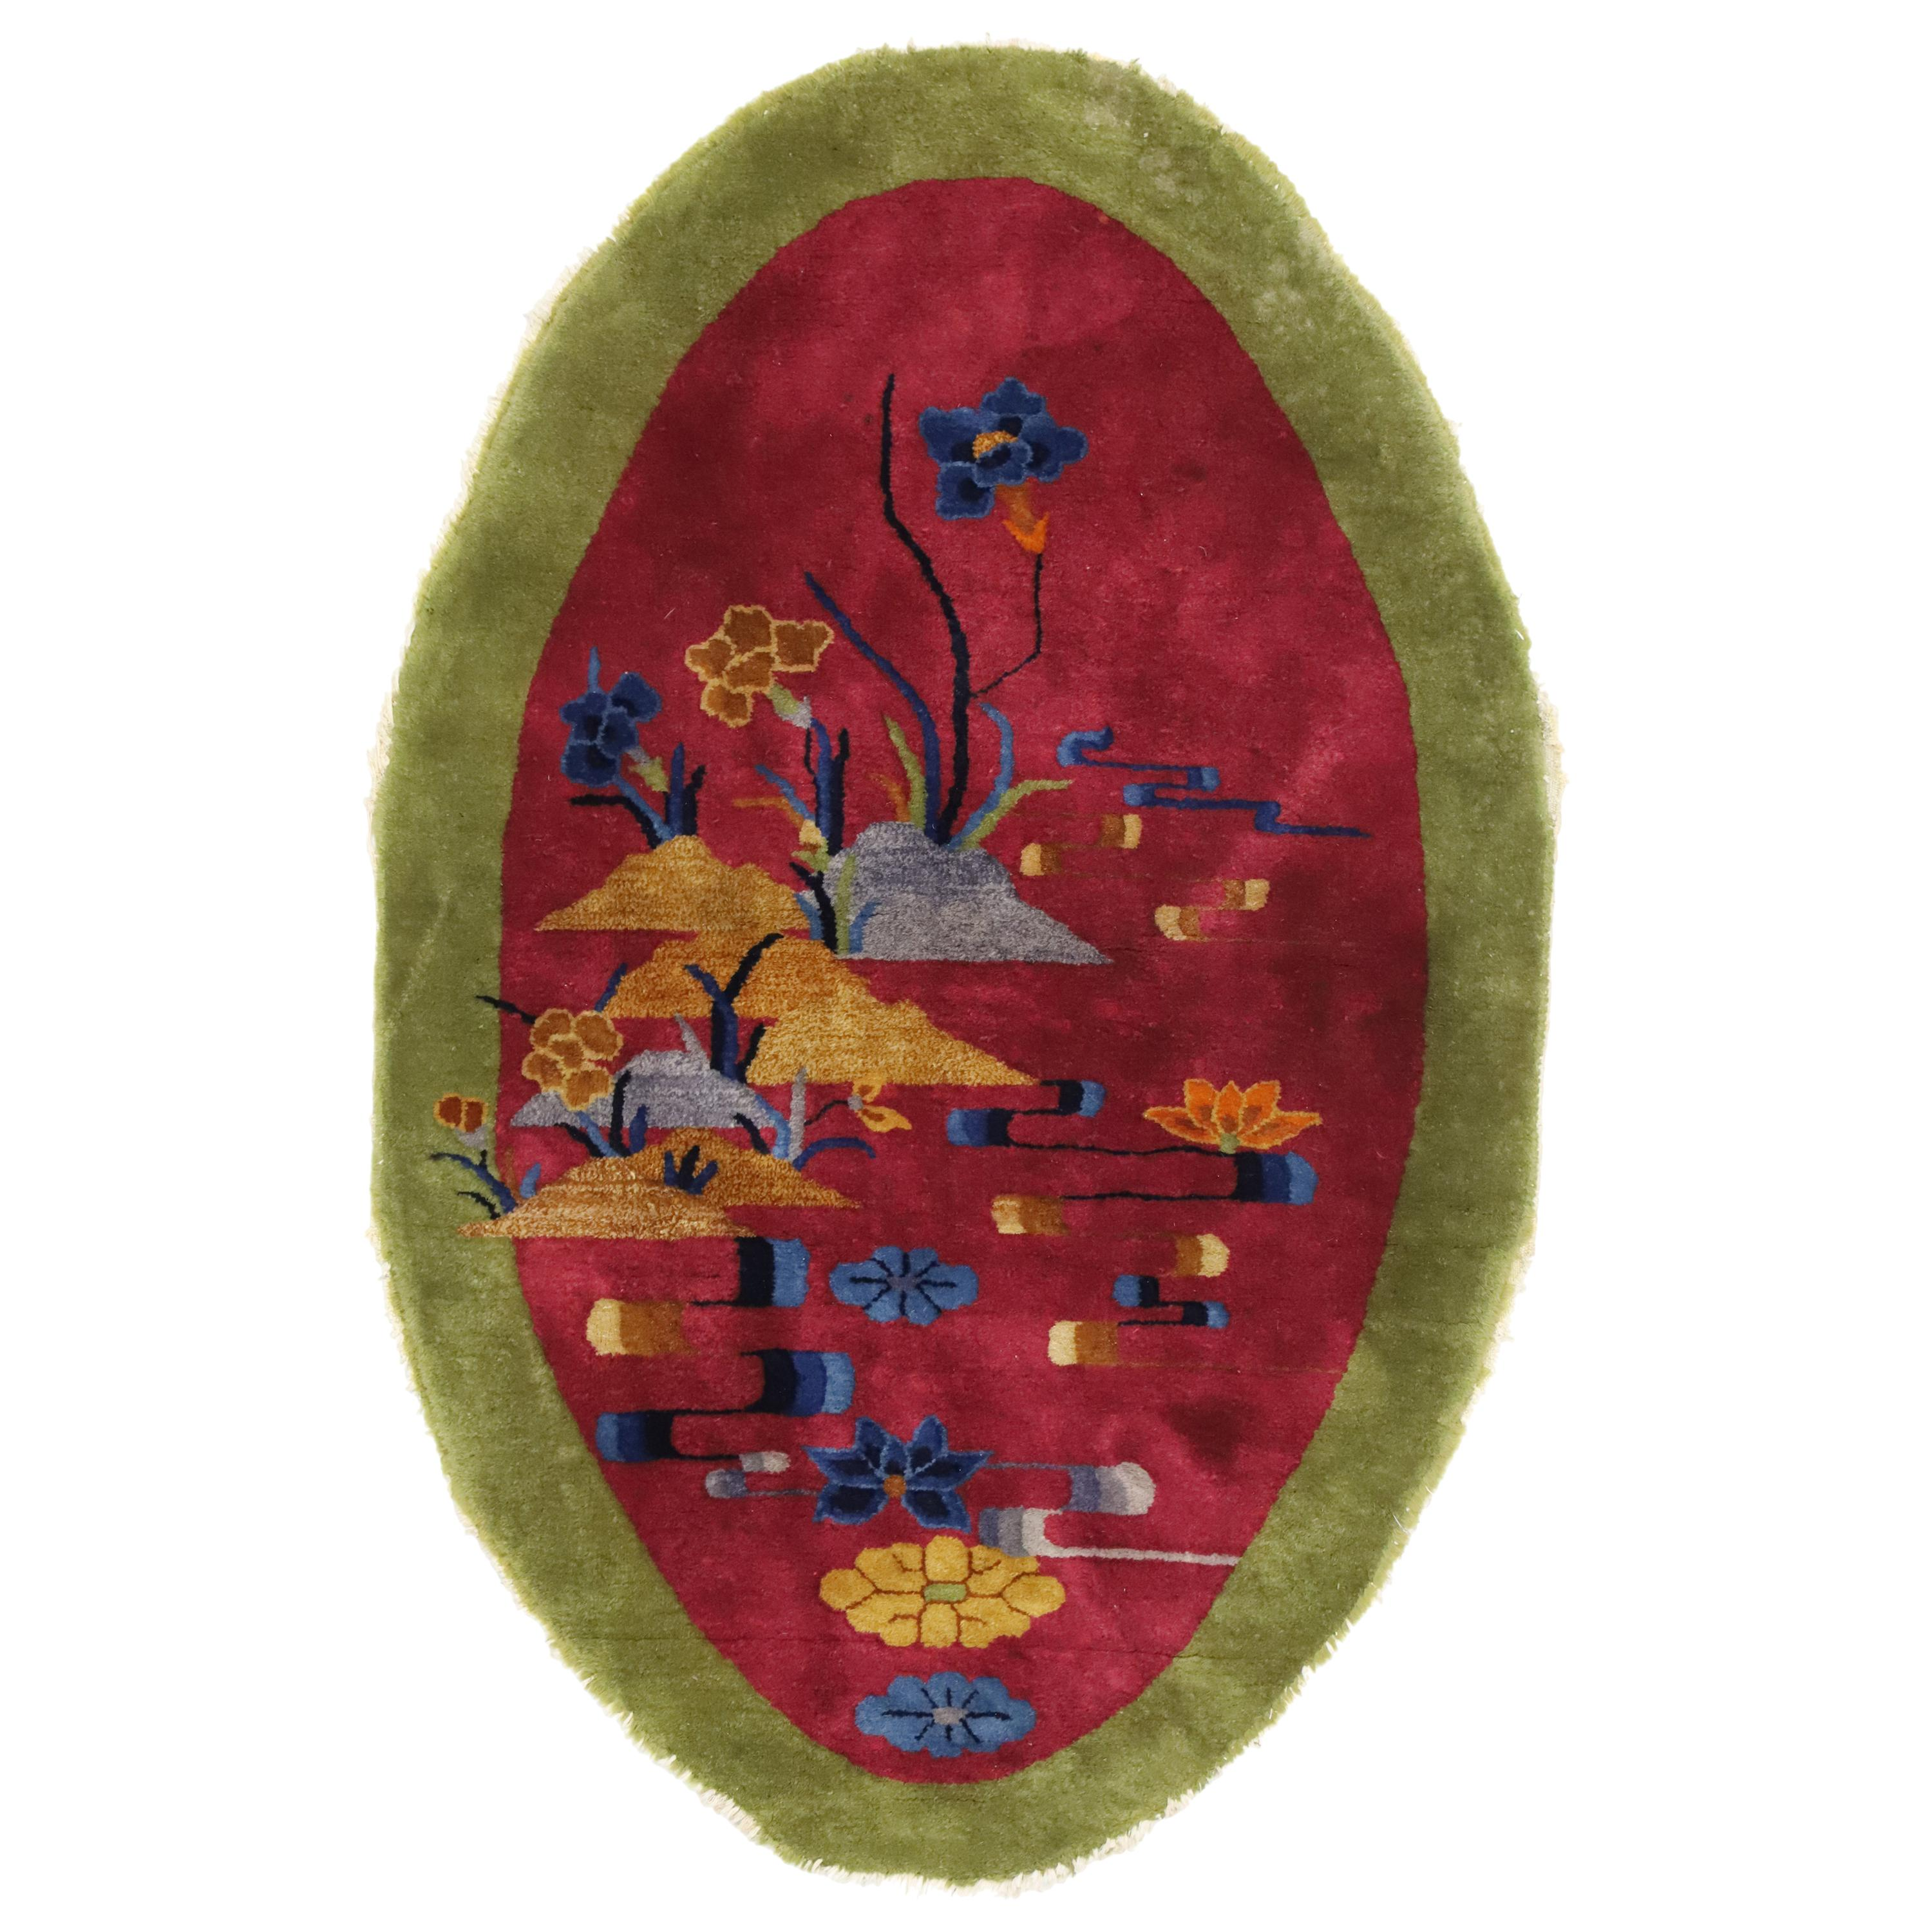 Antique Chinese Art Deco Style Rug, Oval Rug, Accent Rug